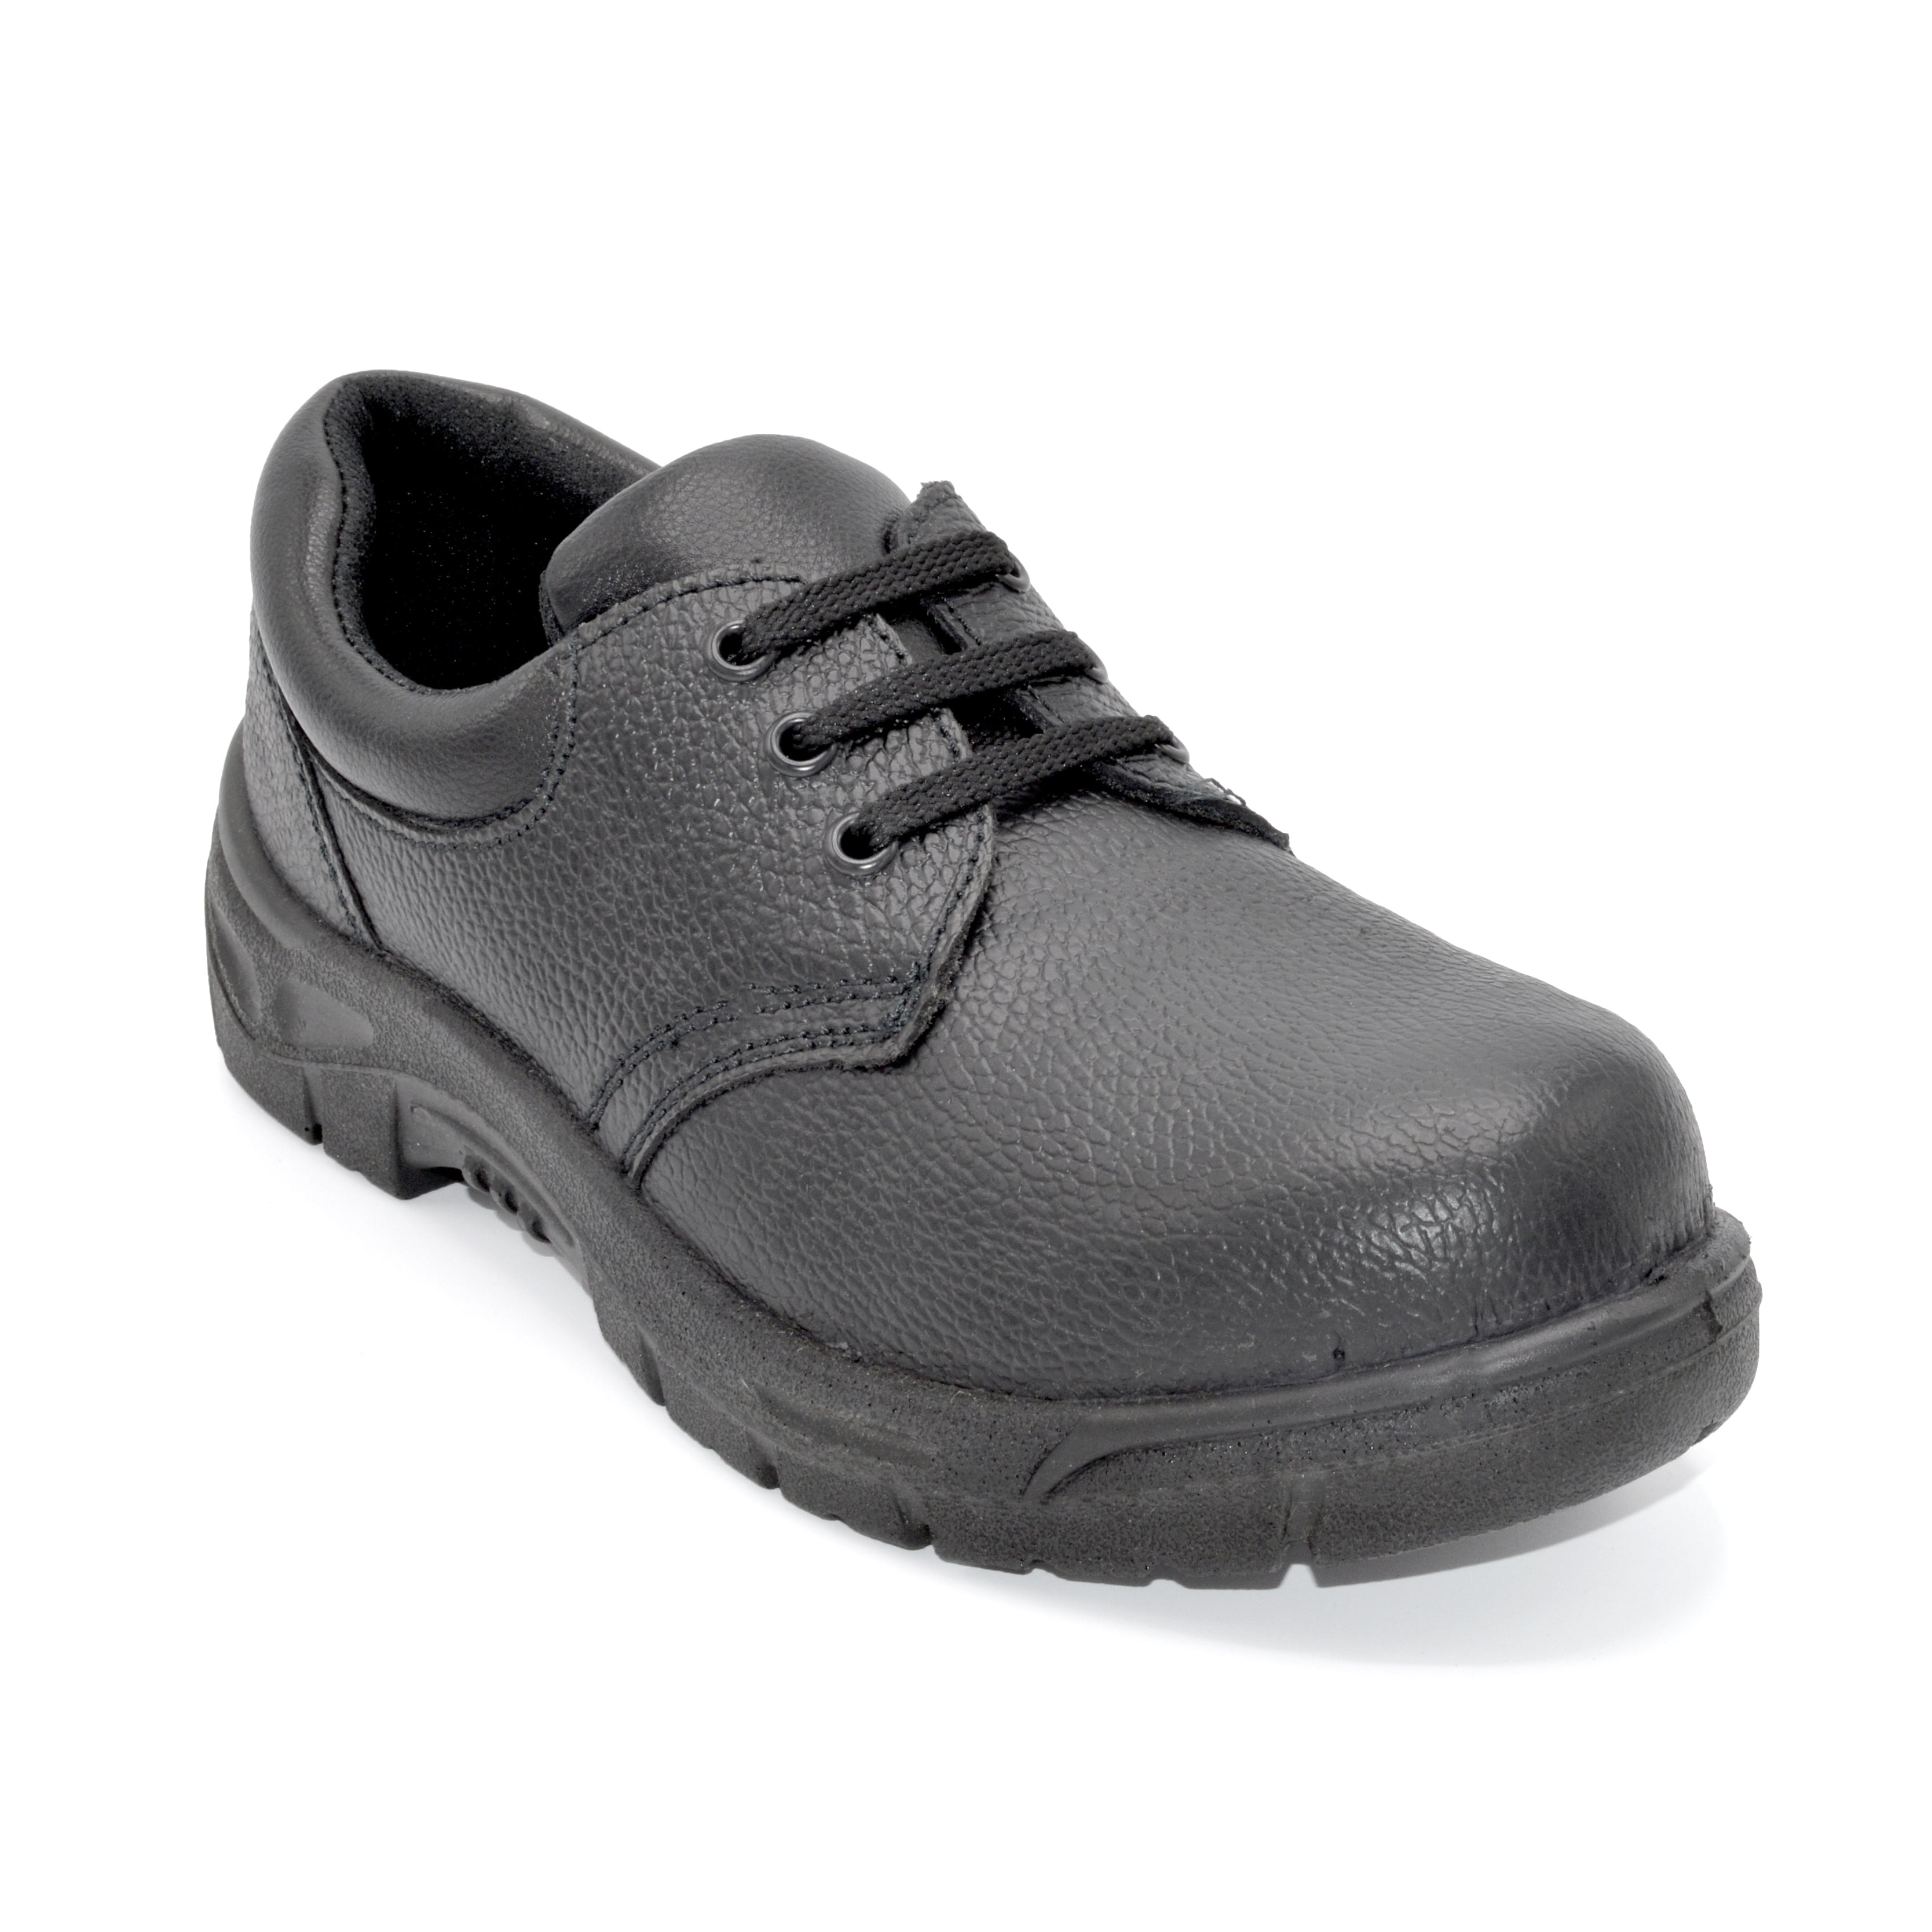 Grafters M530A Wide Fit Safety Shoe - E Fitting